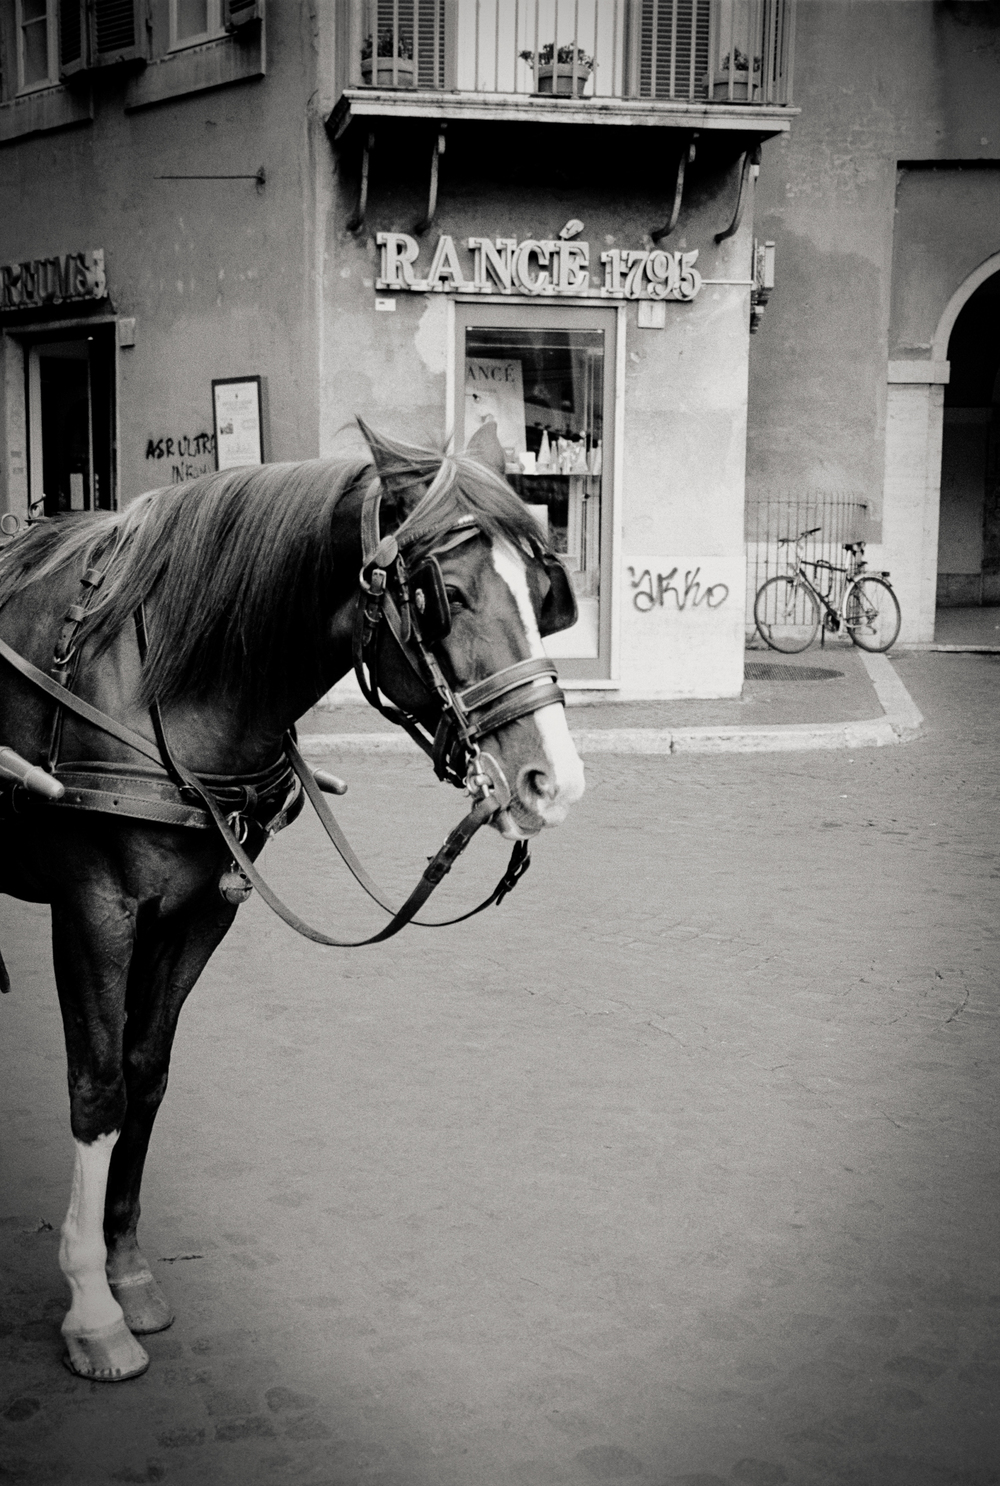 horse, Florence, Italy 2001.